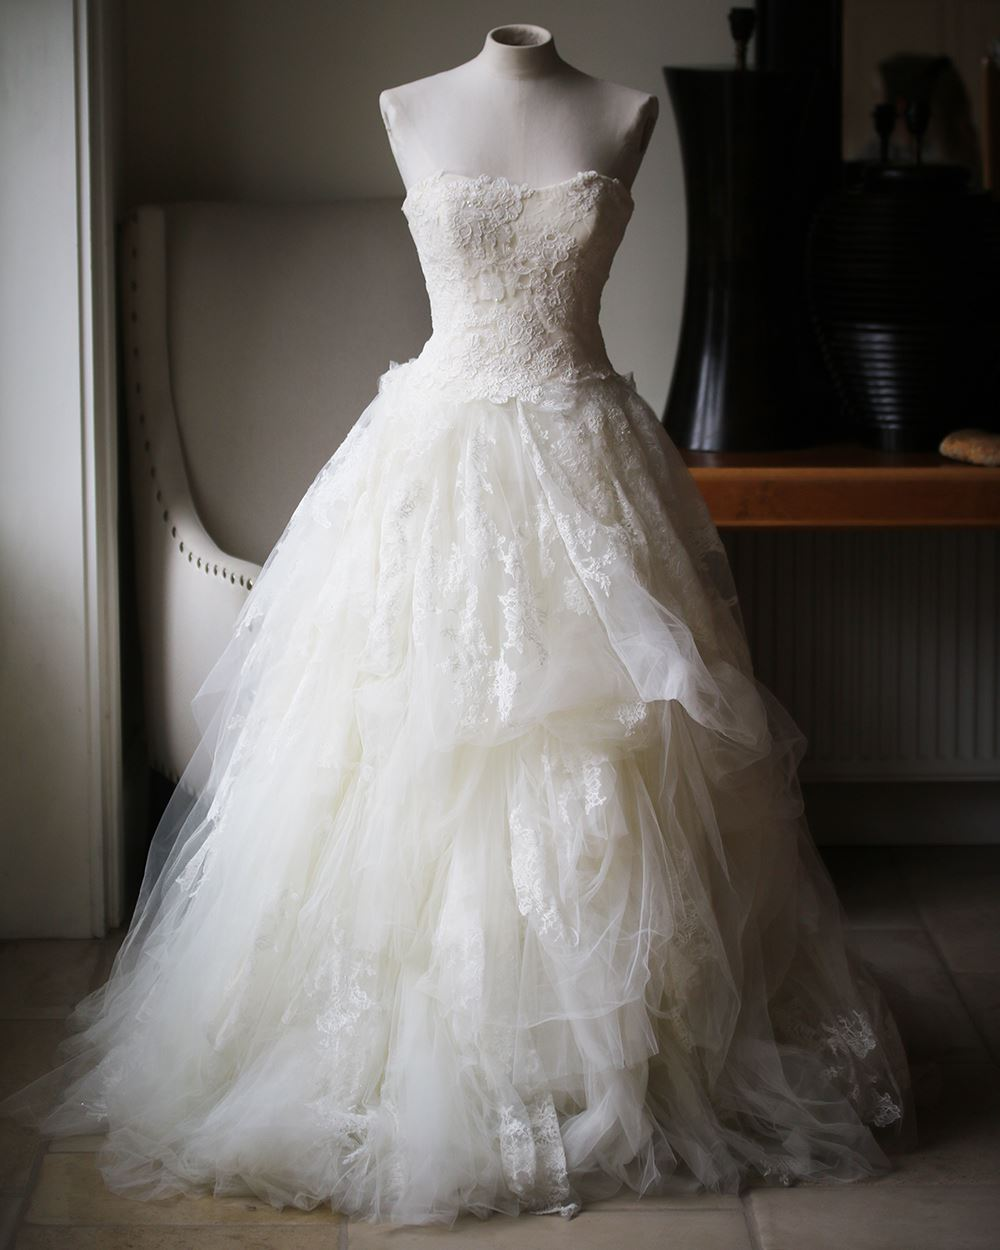 Details about VERA WANG LUXE EMBELLISHED LACE AND TULLE WEDDING DRESS US 20  UK 20